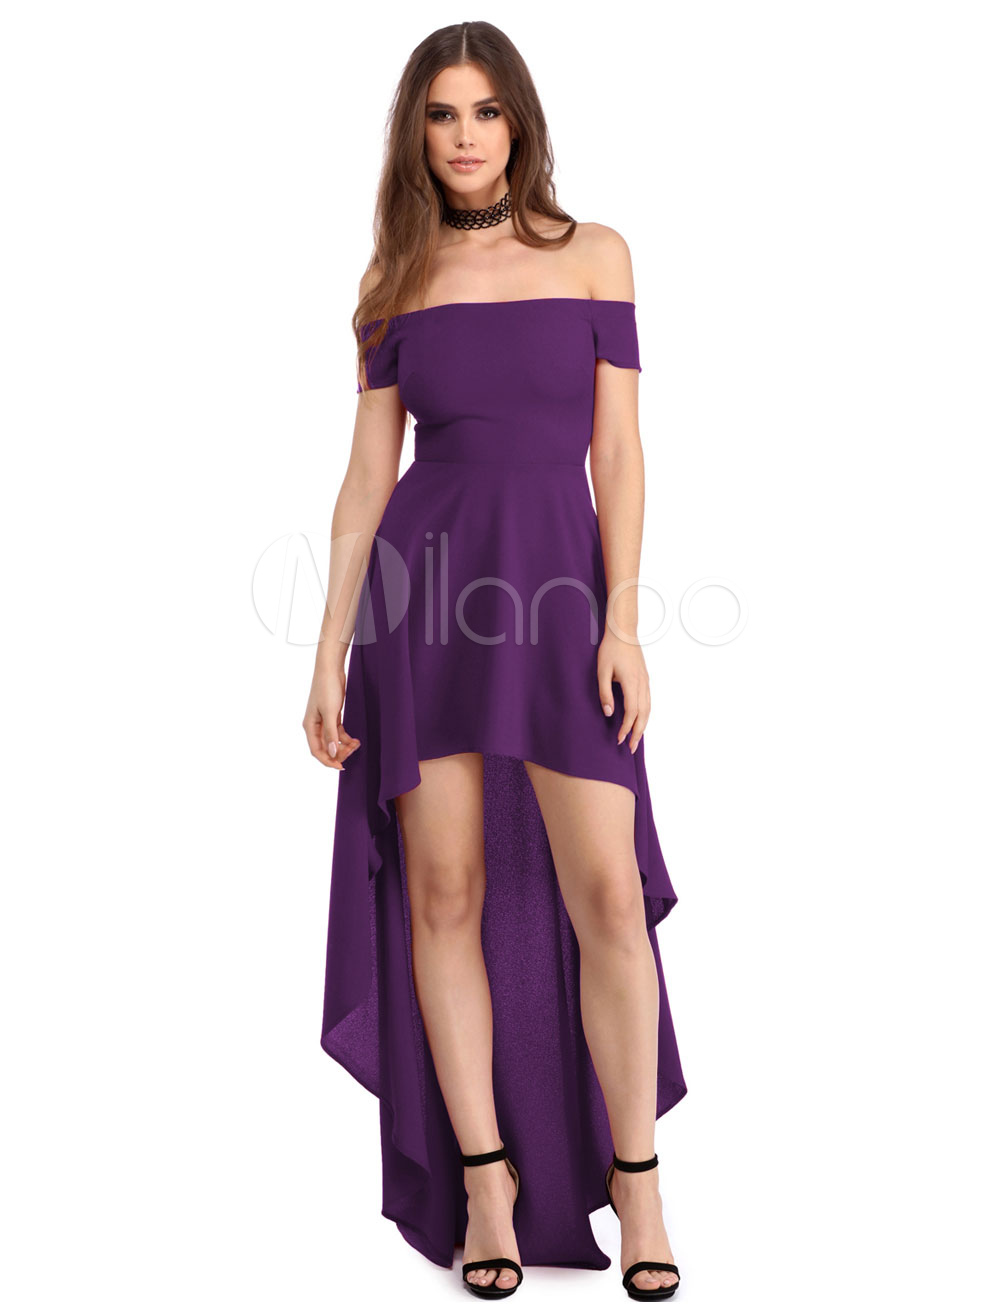 Buy Women Formal Dress Off The Shoulder Short Sleeve Sexy High Low Purple Skater Dresses for $18.99 in Milanoo store